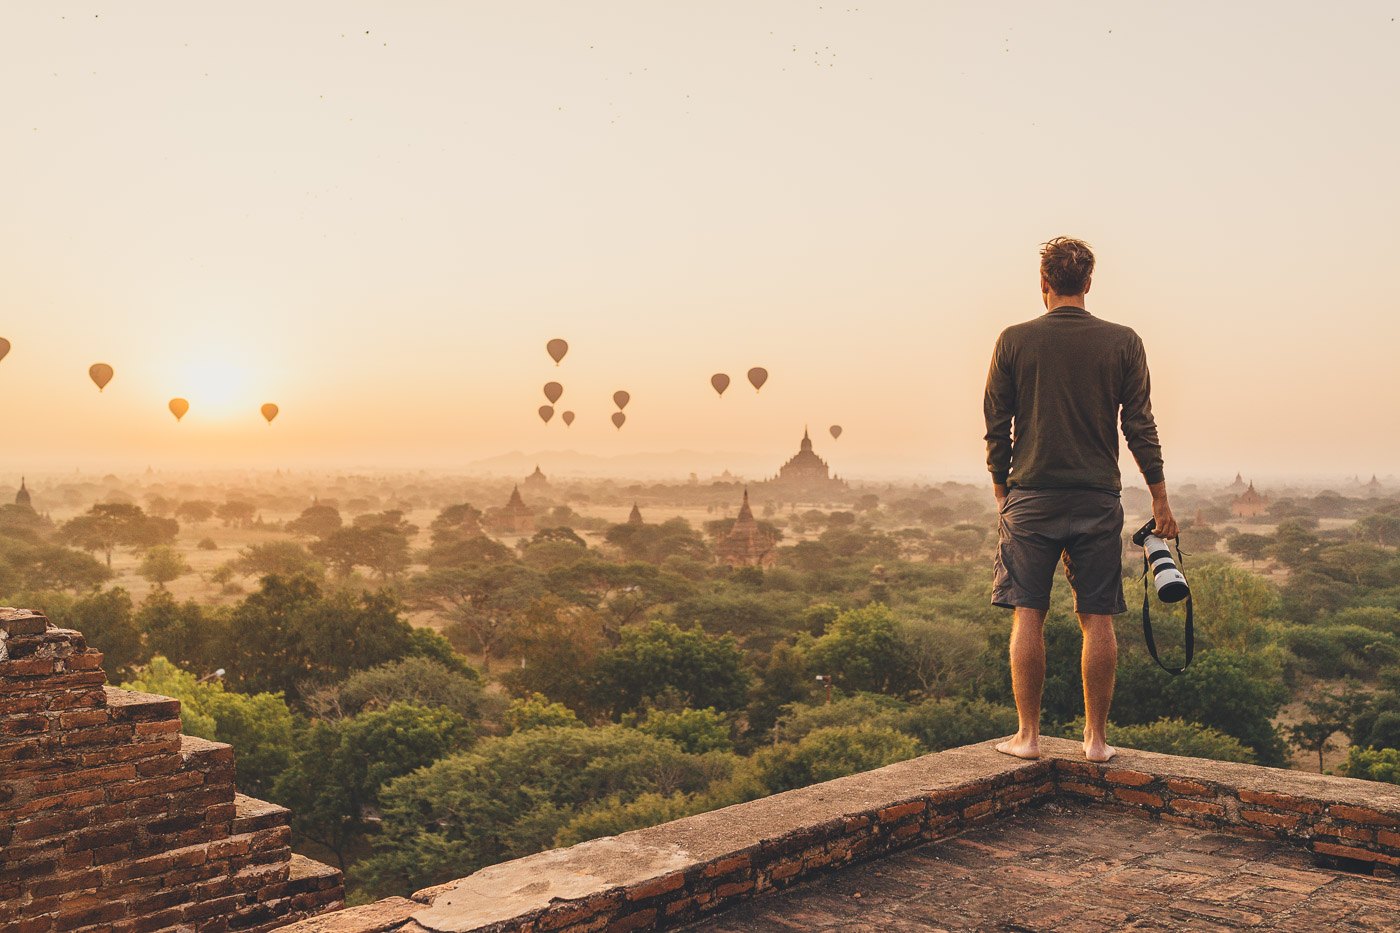 Stefan Haworth photographing balloons flying over Bagan in Myanmar with Sony a7rII and FE 16-35mm f/4